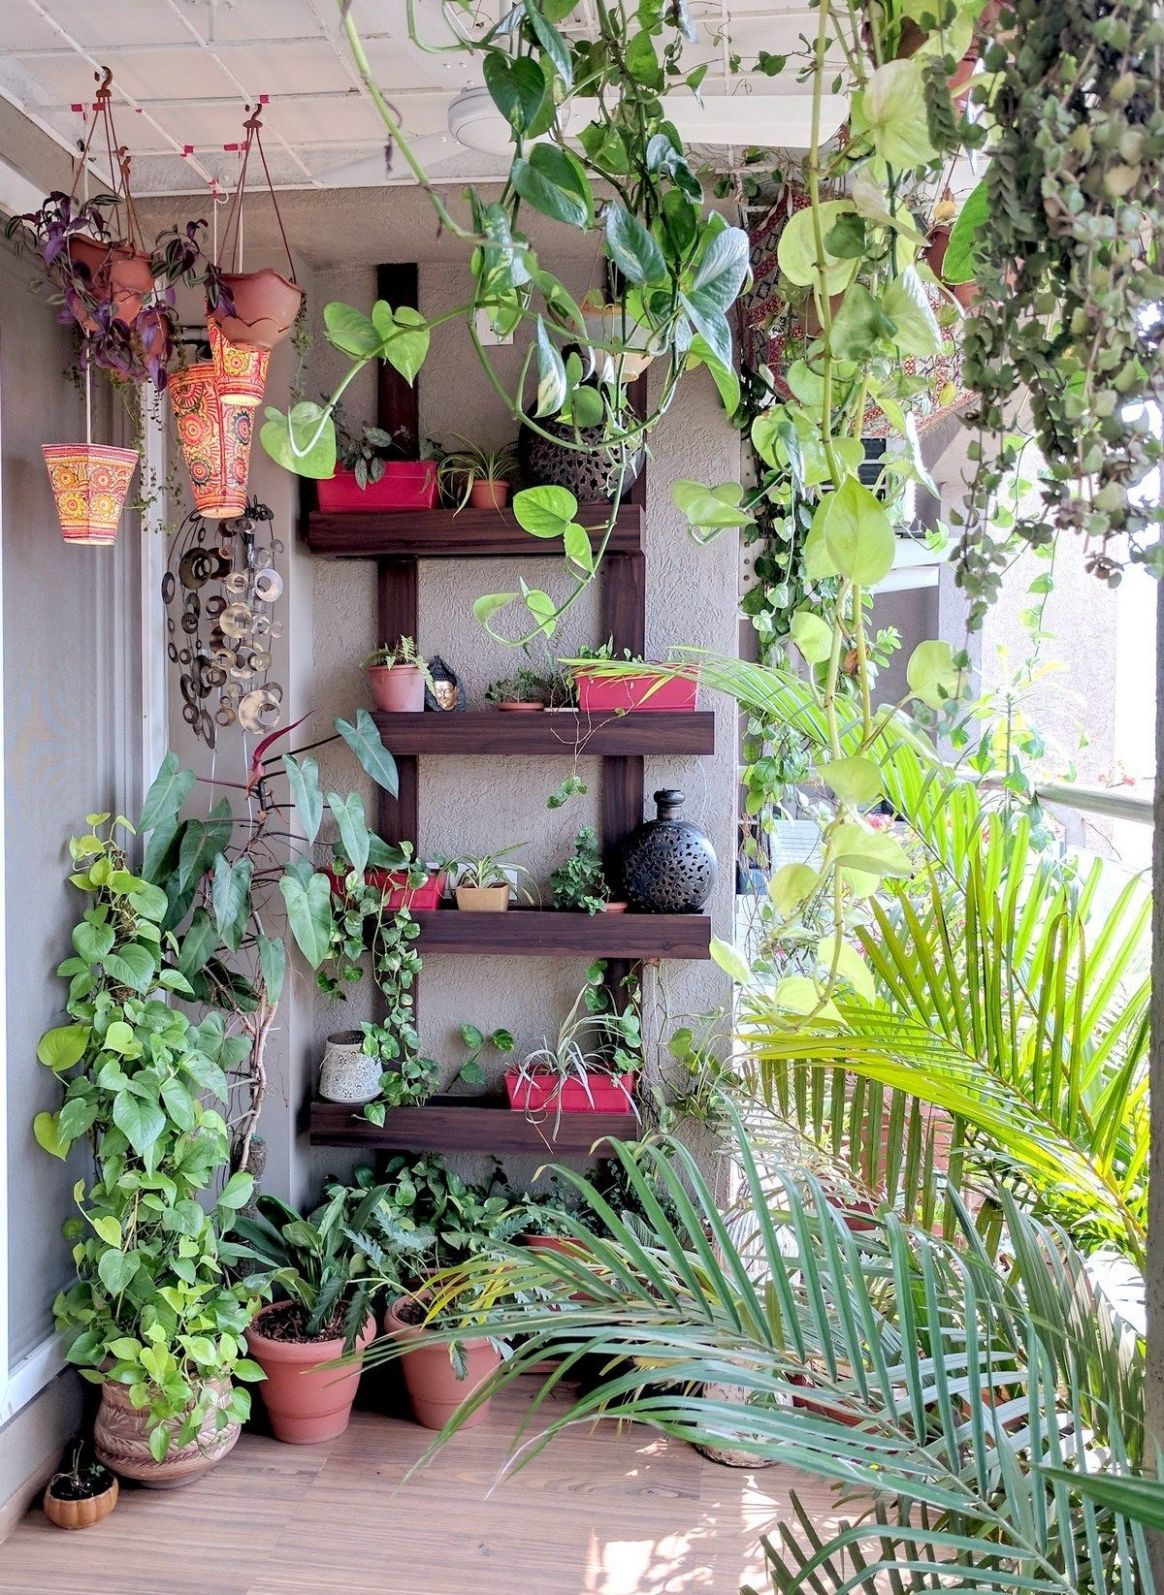 A Balcony Garden In Mumbai: Terrace Reveal (With images) | Patio ..